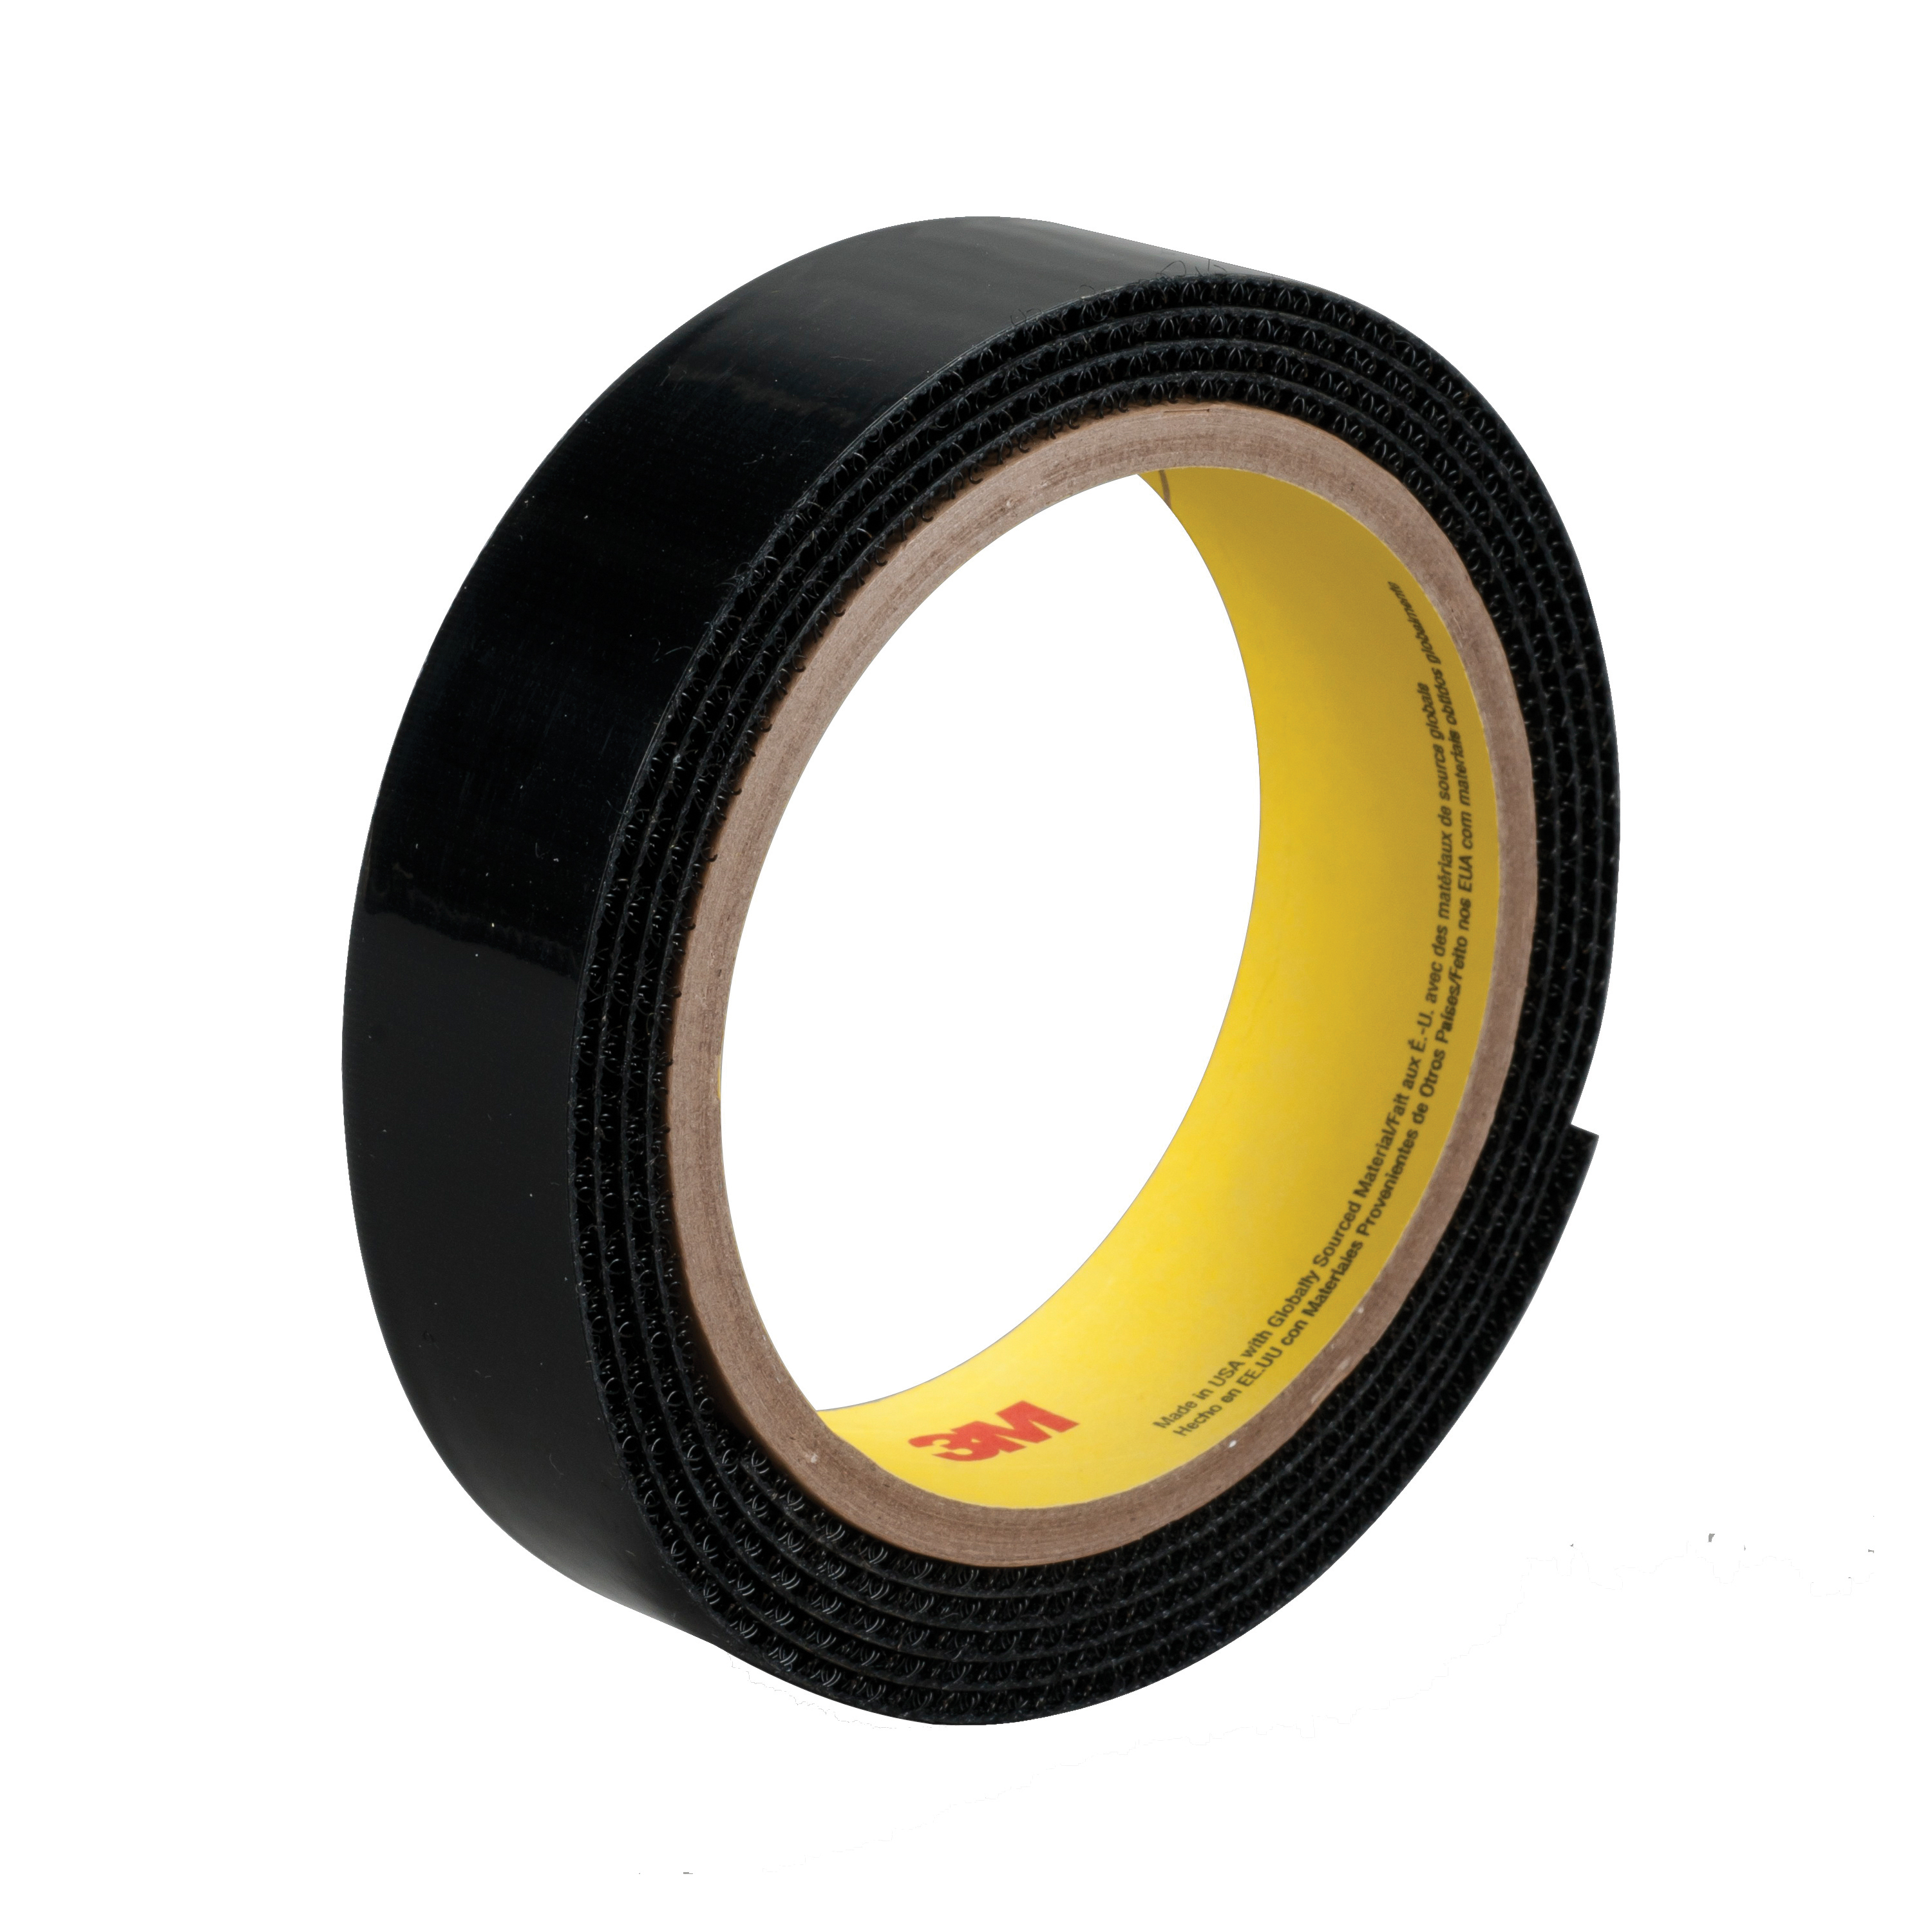 3M™ 021200-23180 Reclosable Hook Fastener Tape, 50 yd L x 1 in W, 0.15 in THK Engaged, Polyethylene Film Liner Adhesive, Woven Nylon Backing, Black